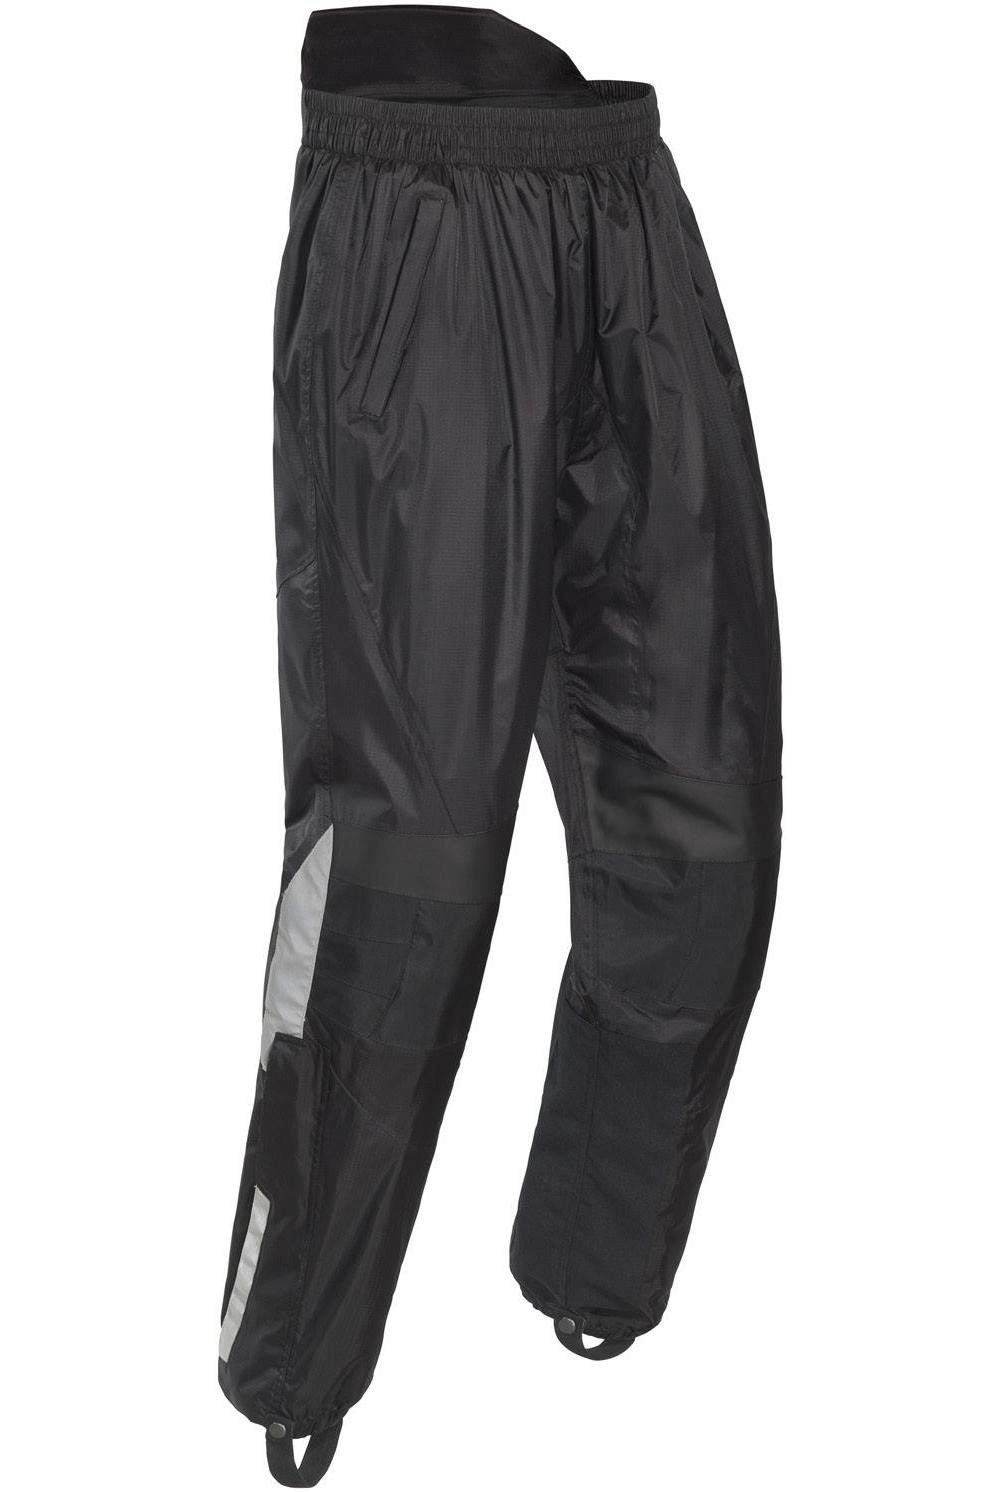 Tourmaster Sentinel 2.0 Rain Pants (X-LARGE) (BLACK) 8796020507